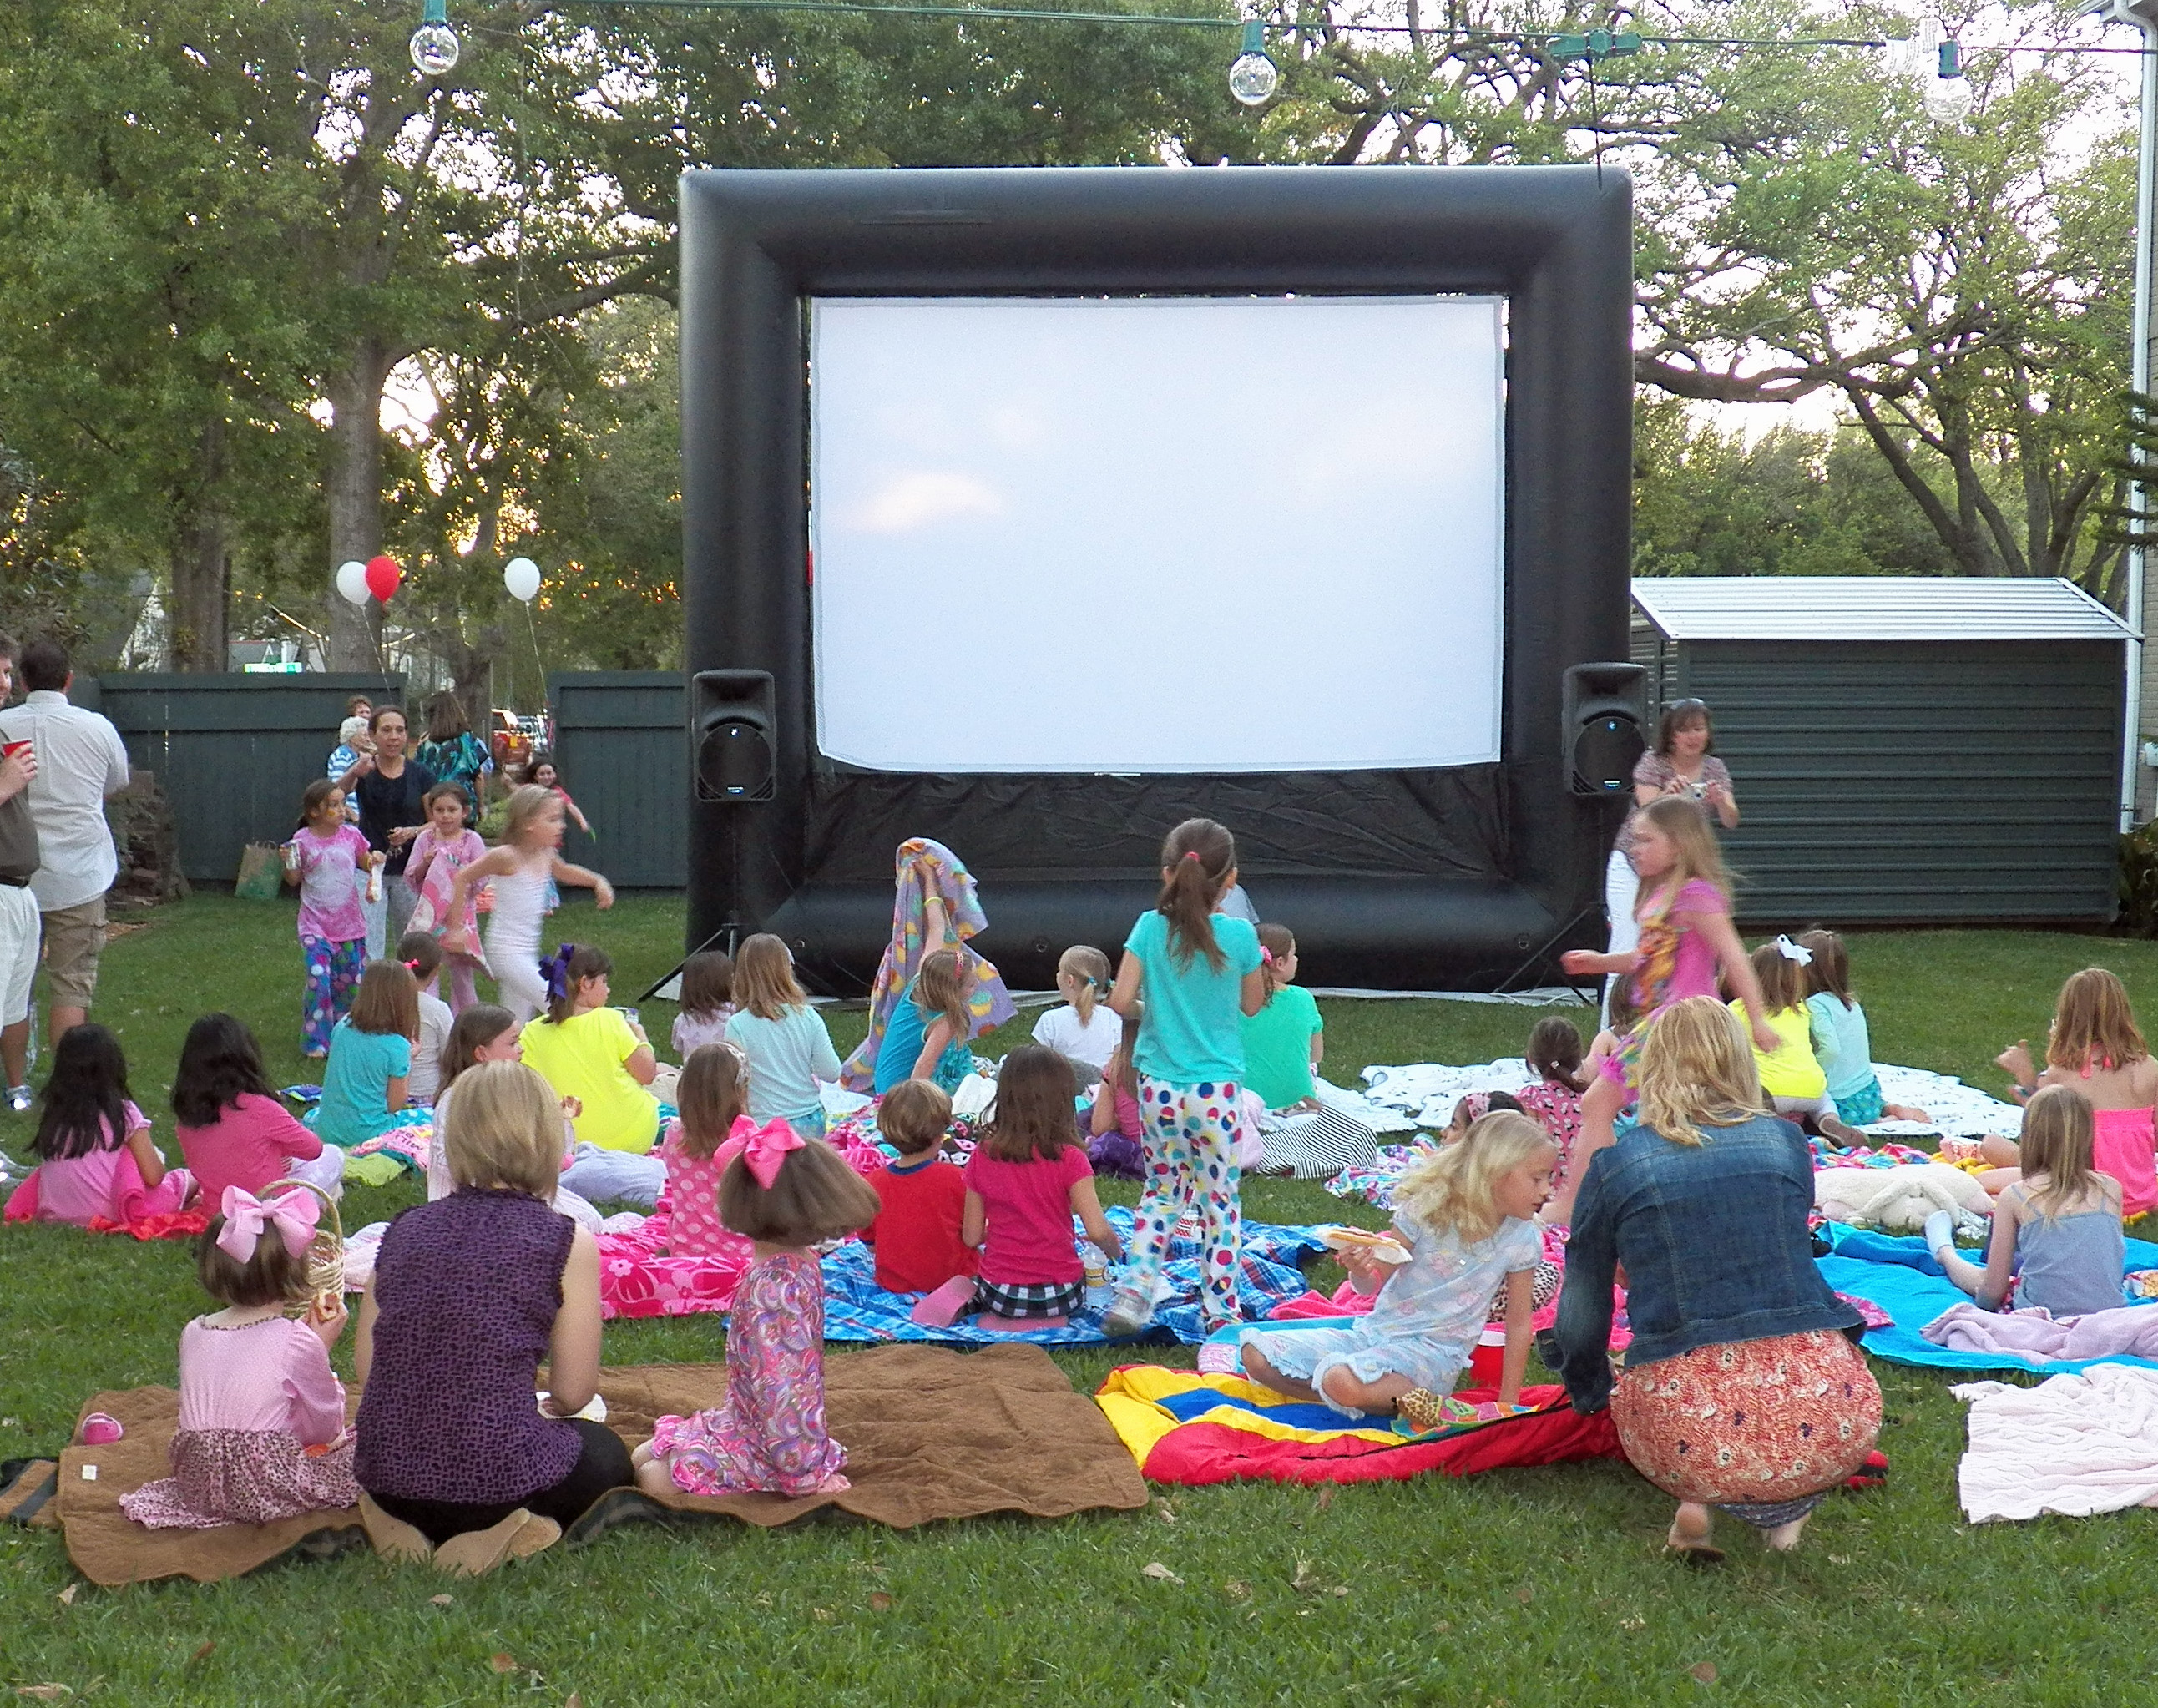 outdoor movie party pajama style that party